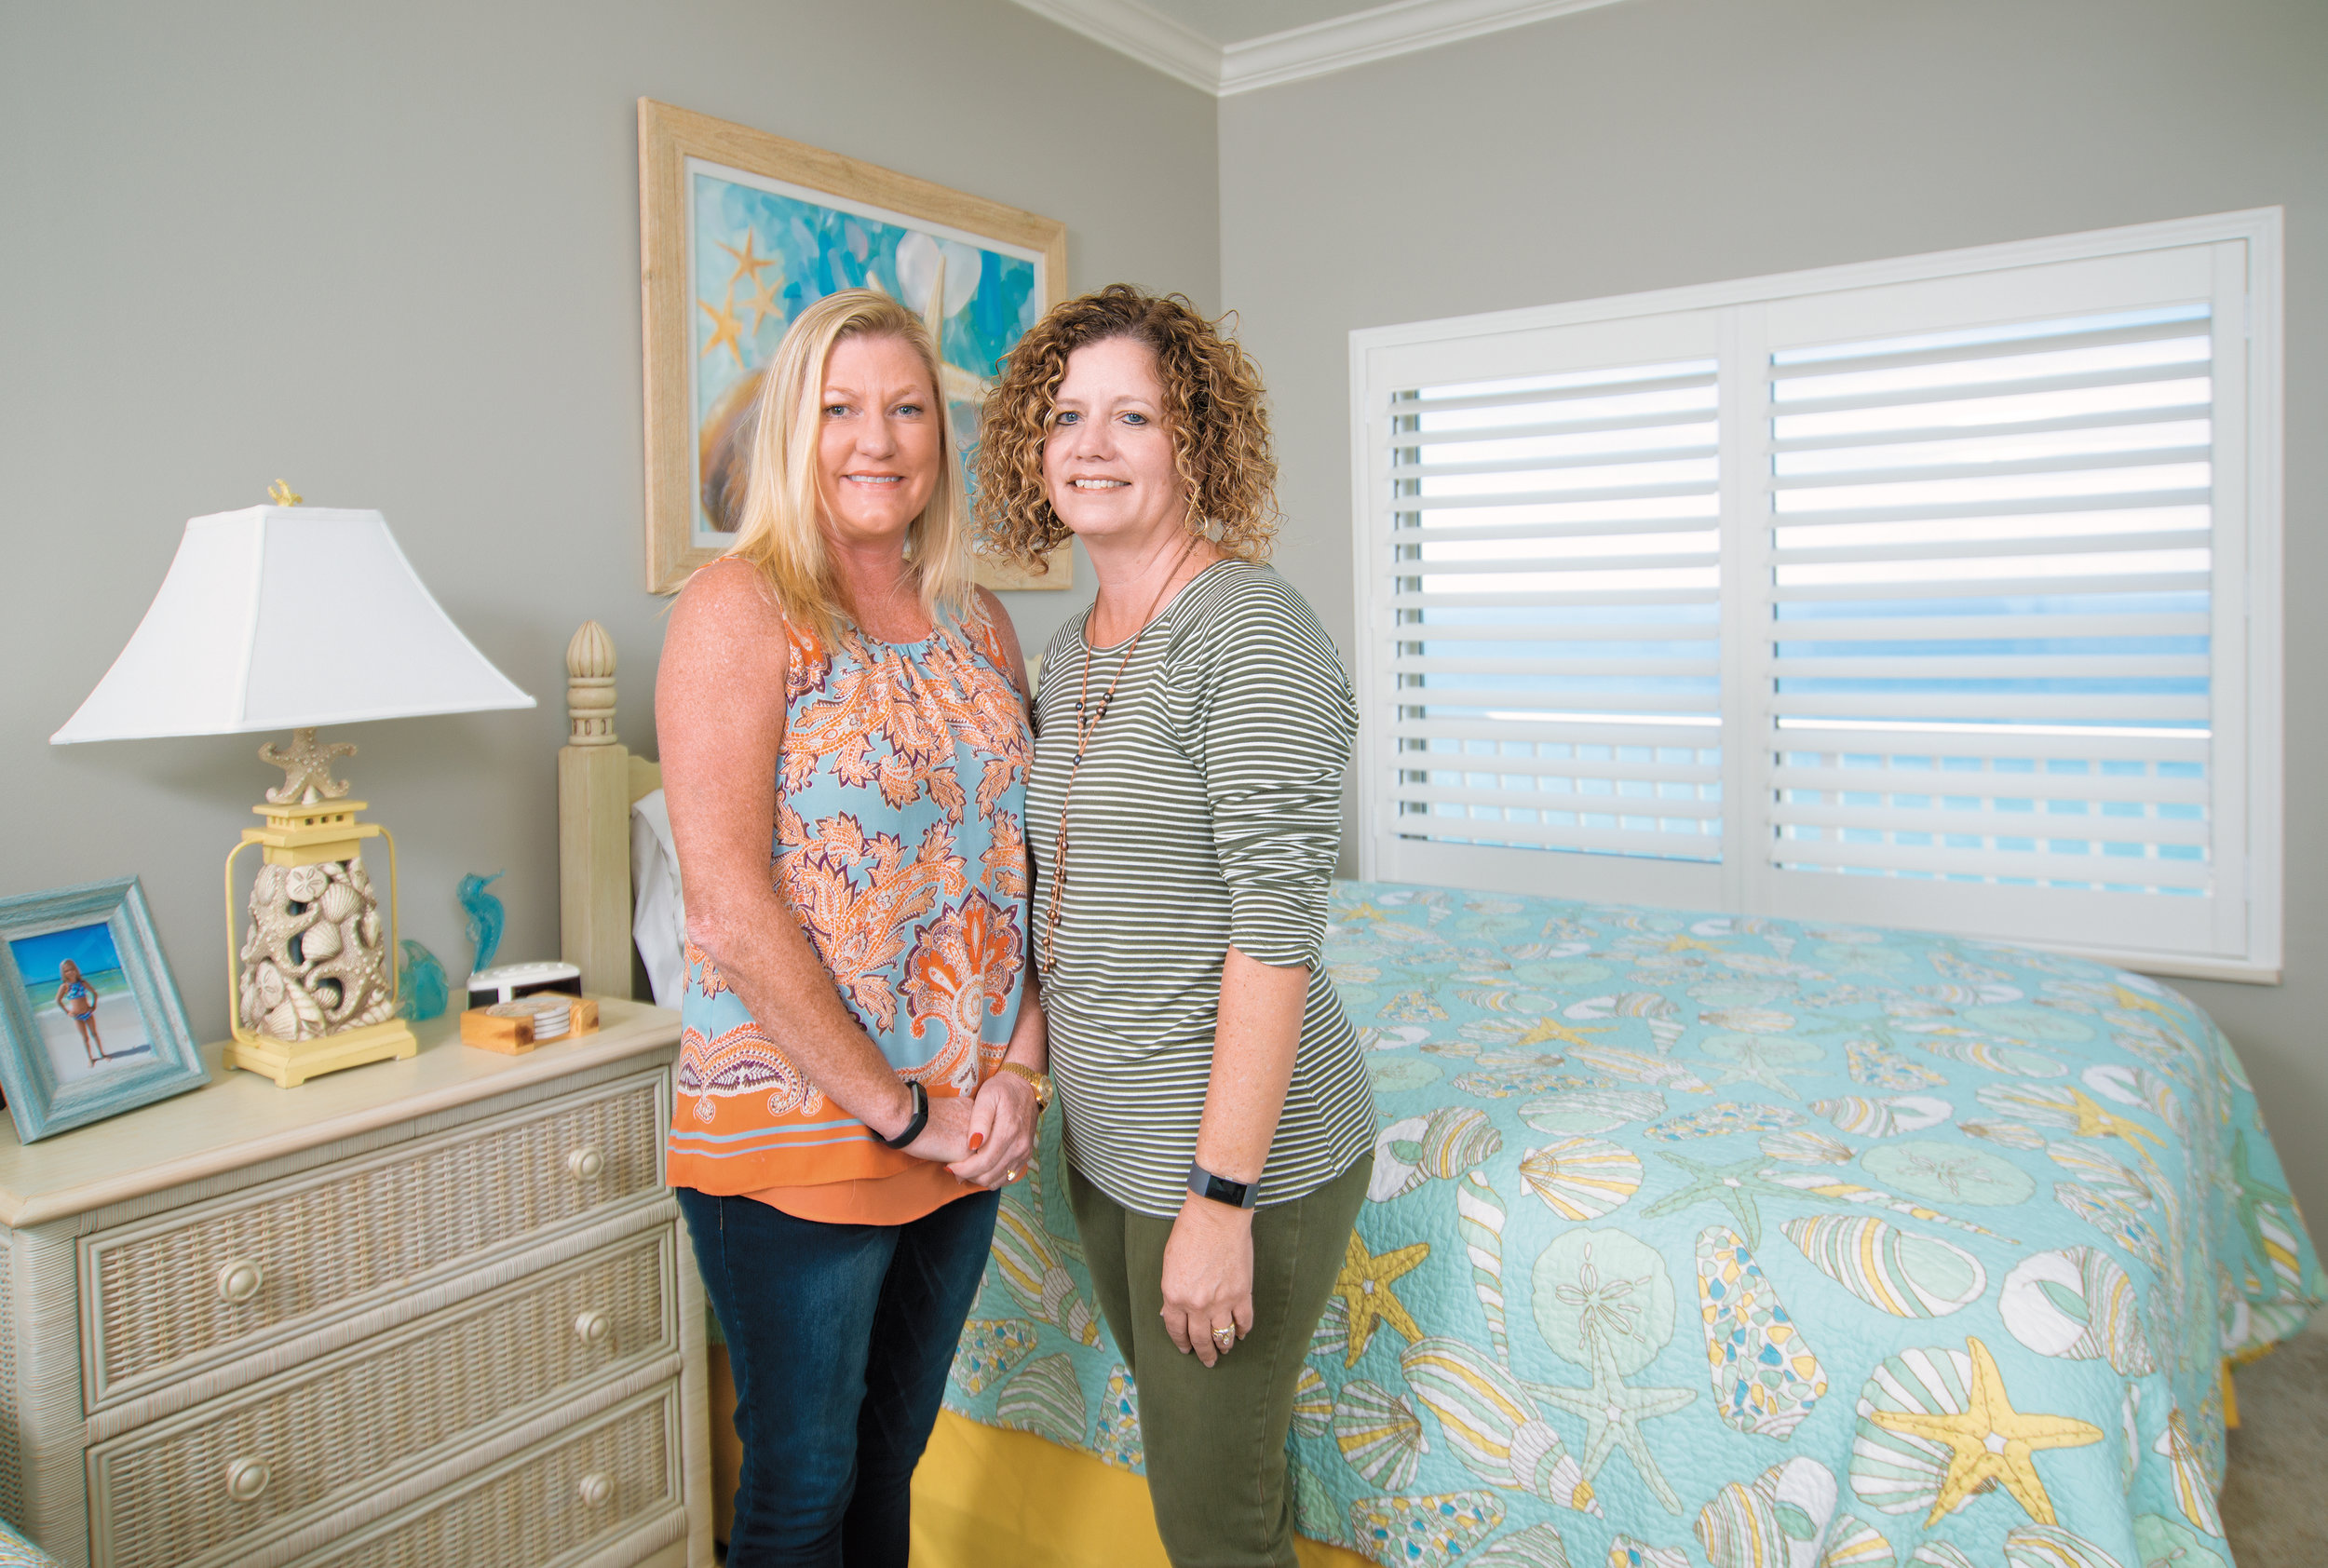 Decorating the Beach - Lyn Donalson, Owner & Design ConsultantTracy Tarter, Design Consultant